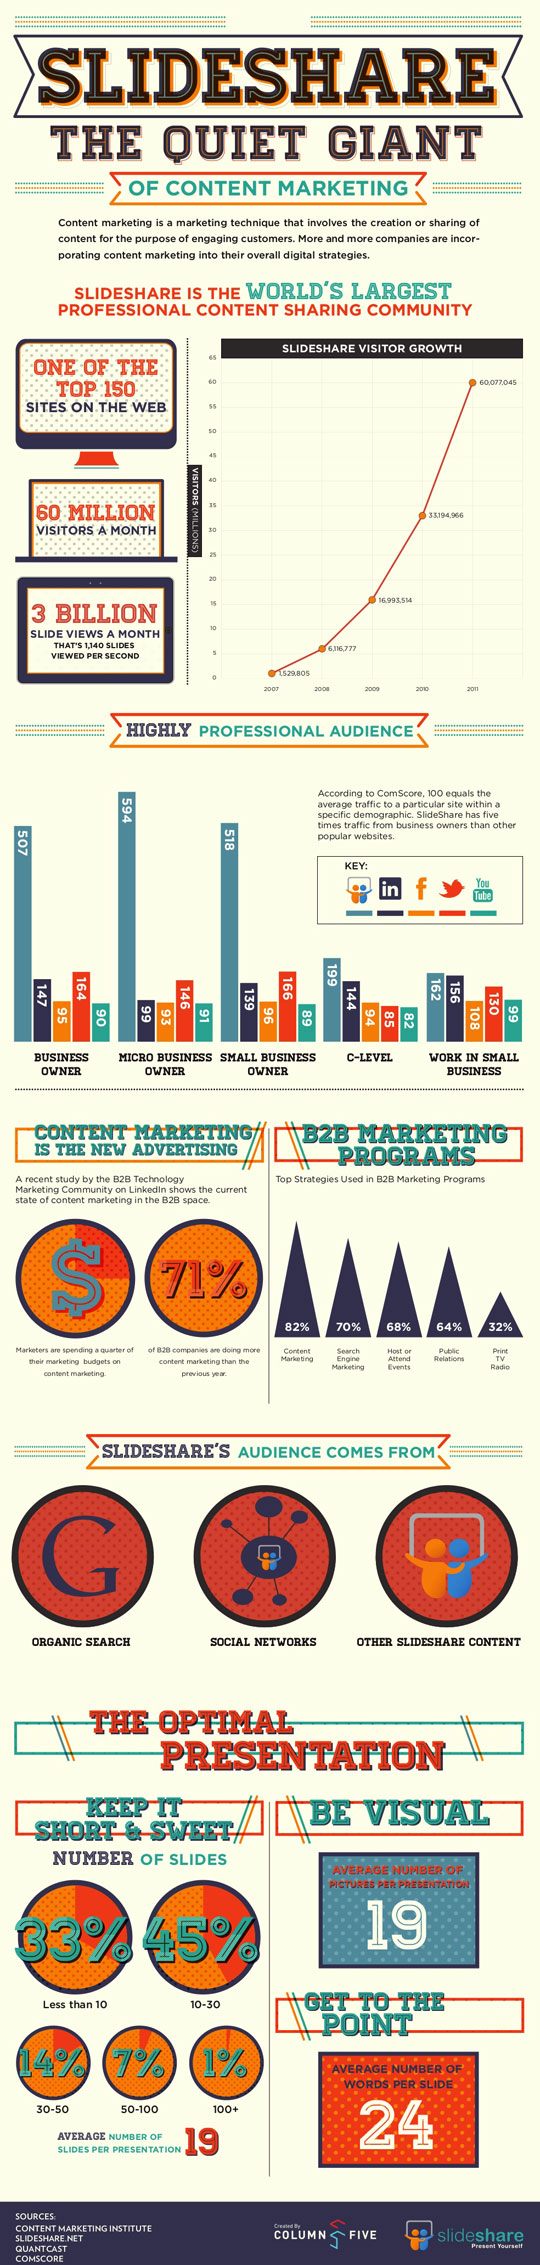 SlideShare Infographic For Business